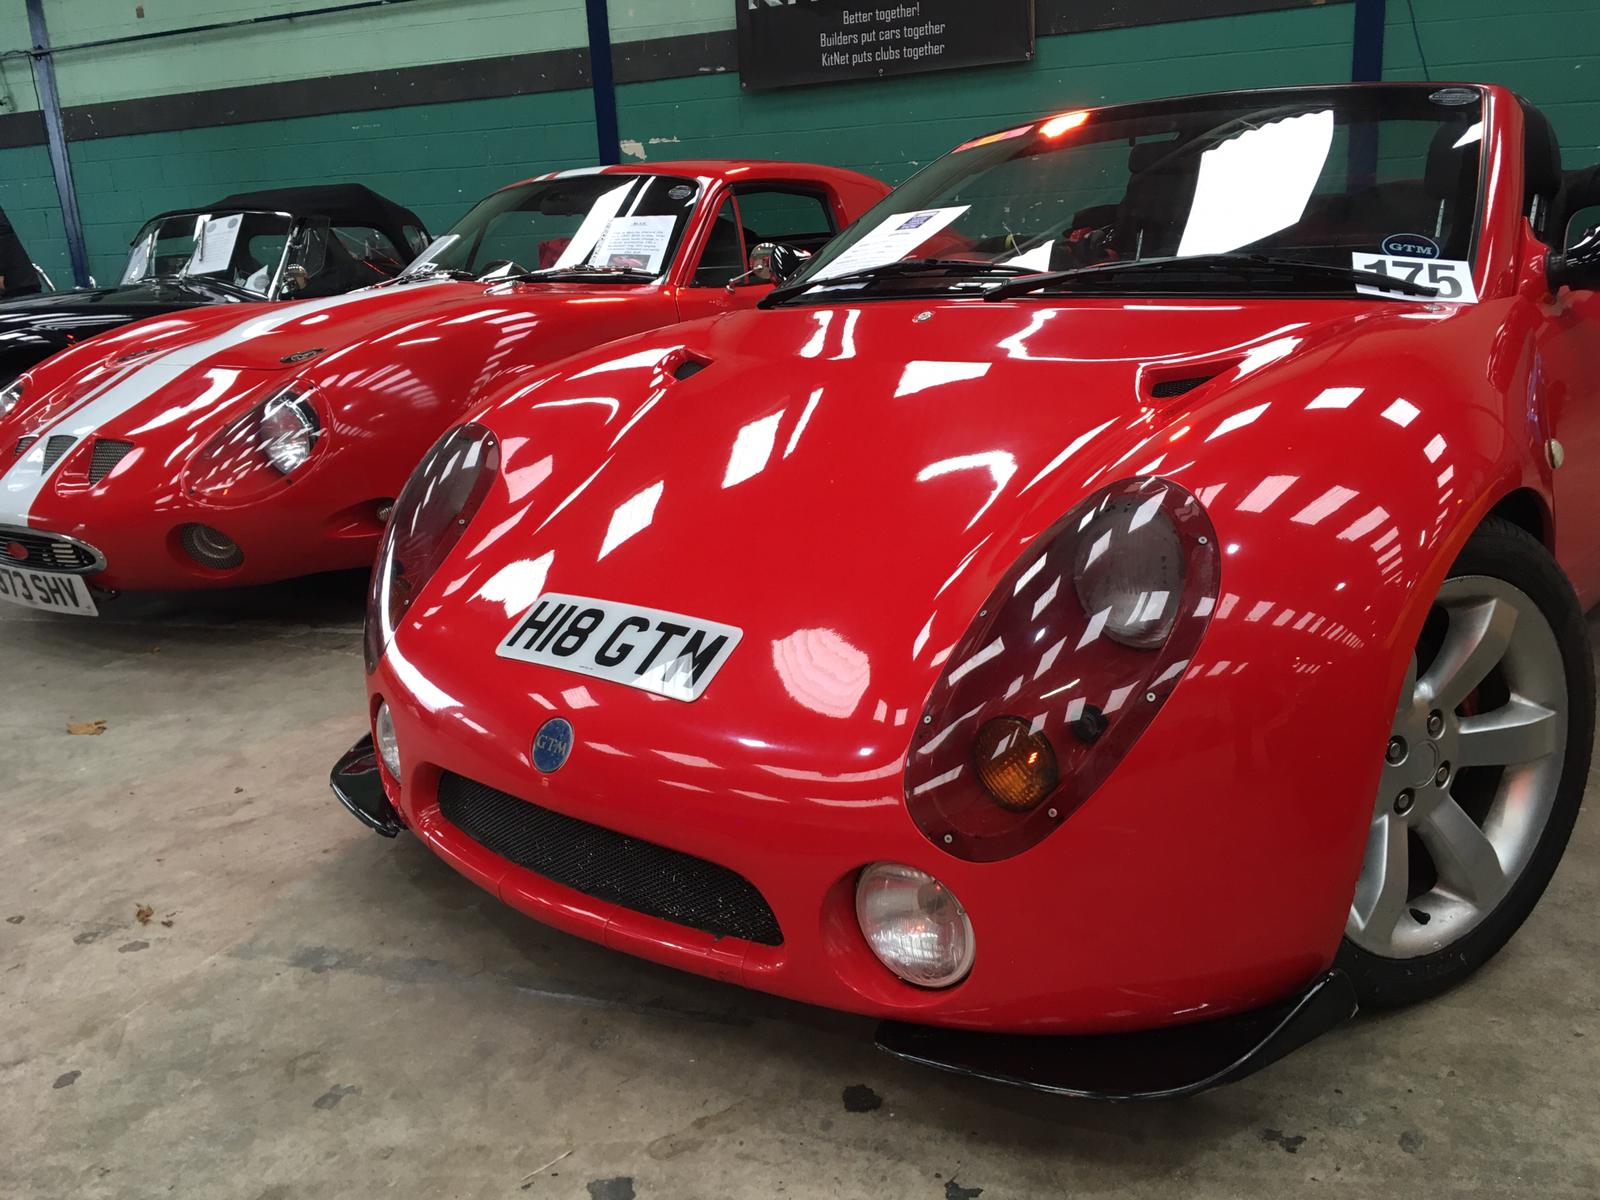 Red GTM cars